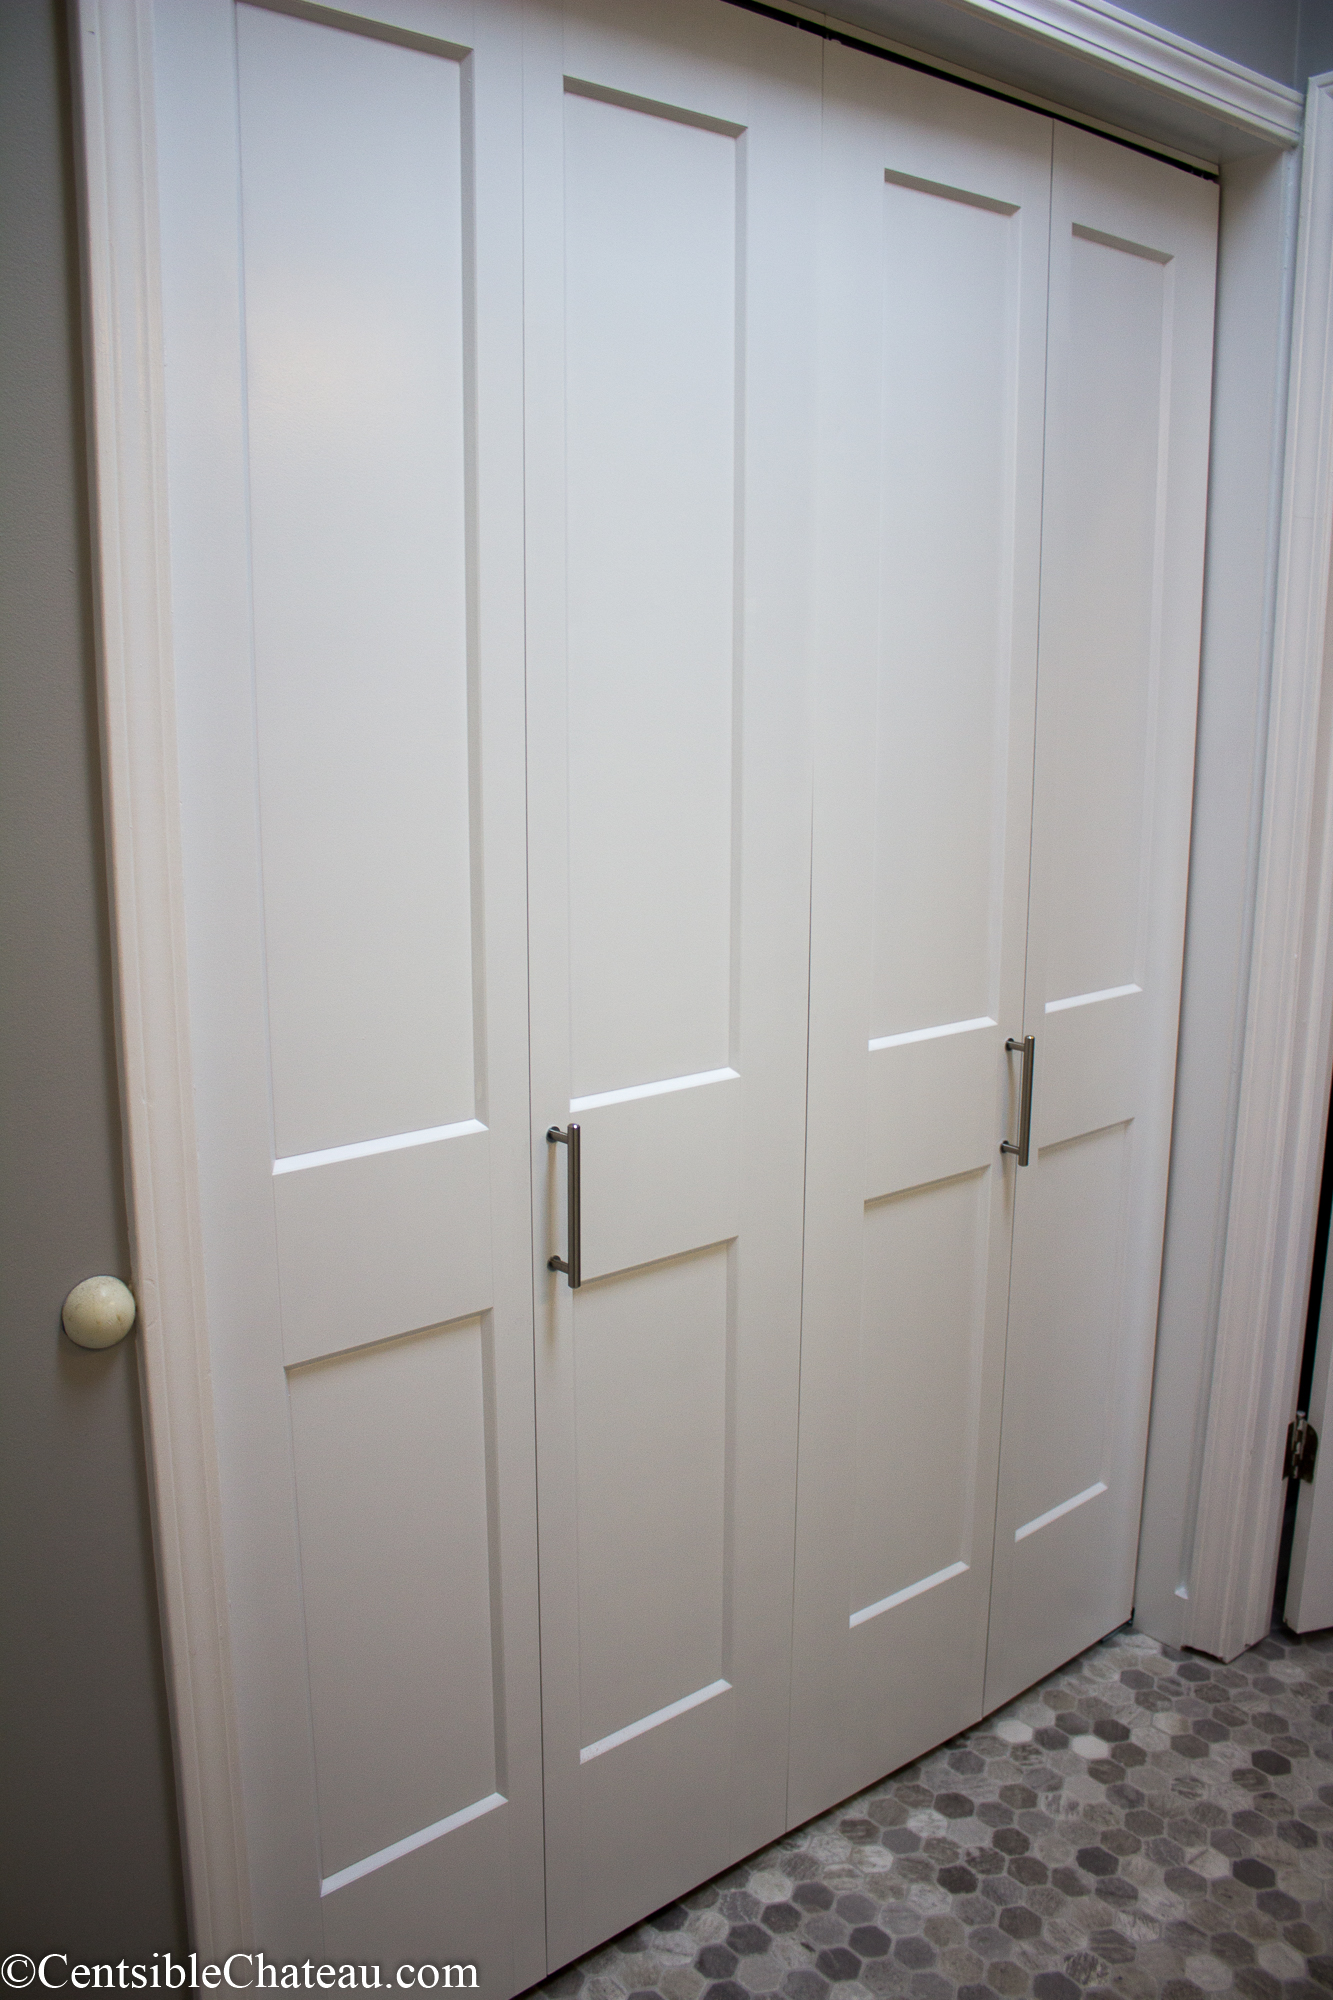 The doors of the closet with their own hands. How to assemble and install sliding doors for the closet with your own hands Mounting the doors of the closet with your own hands